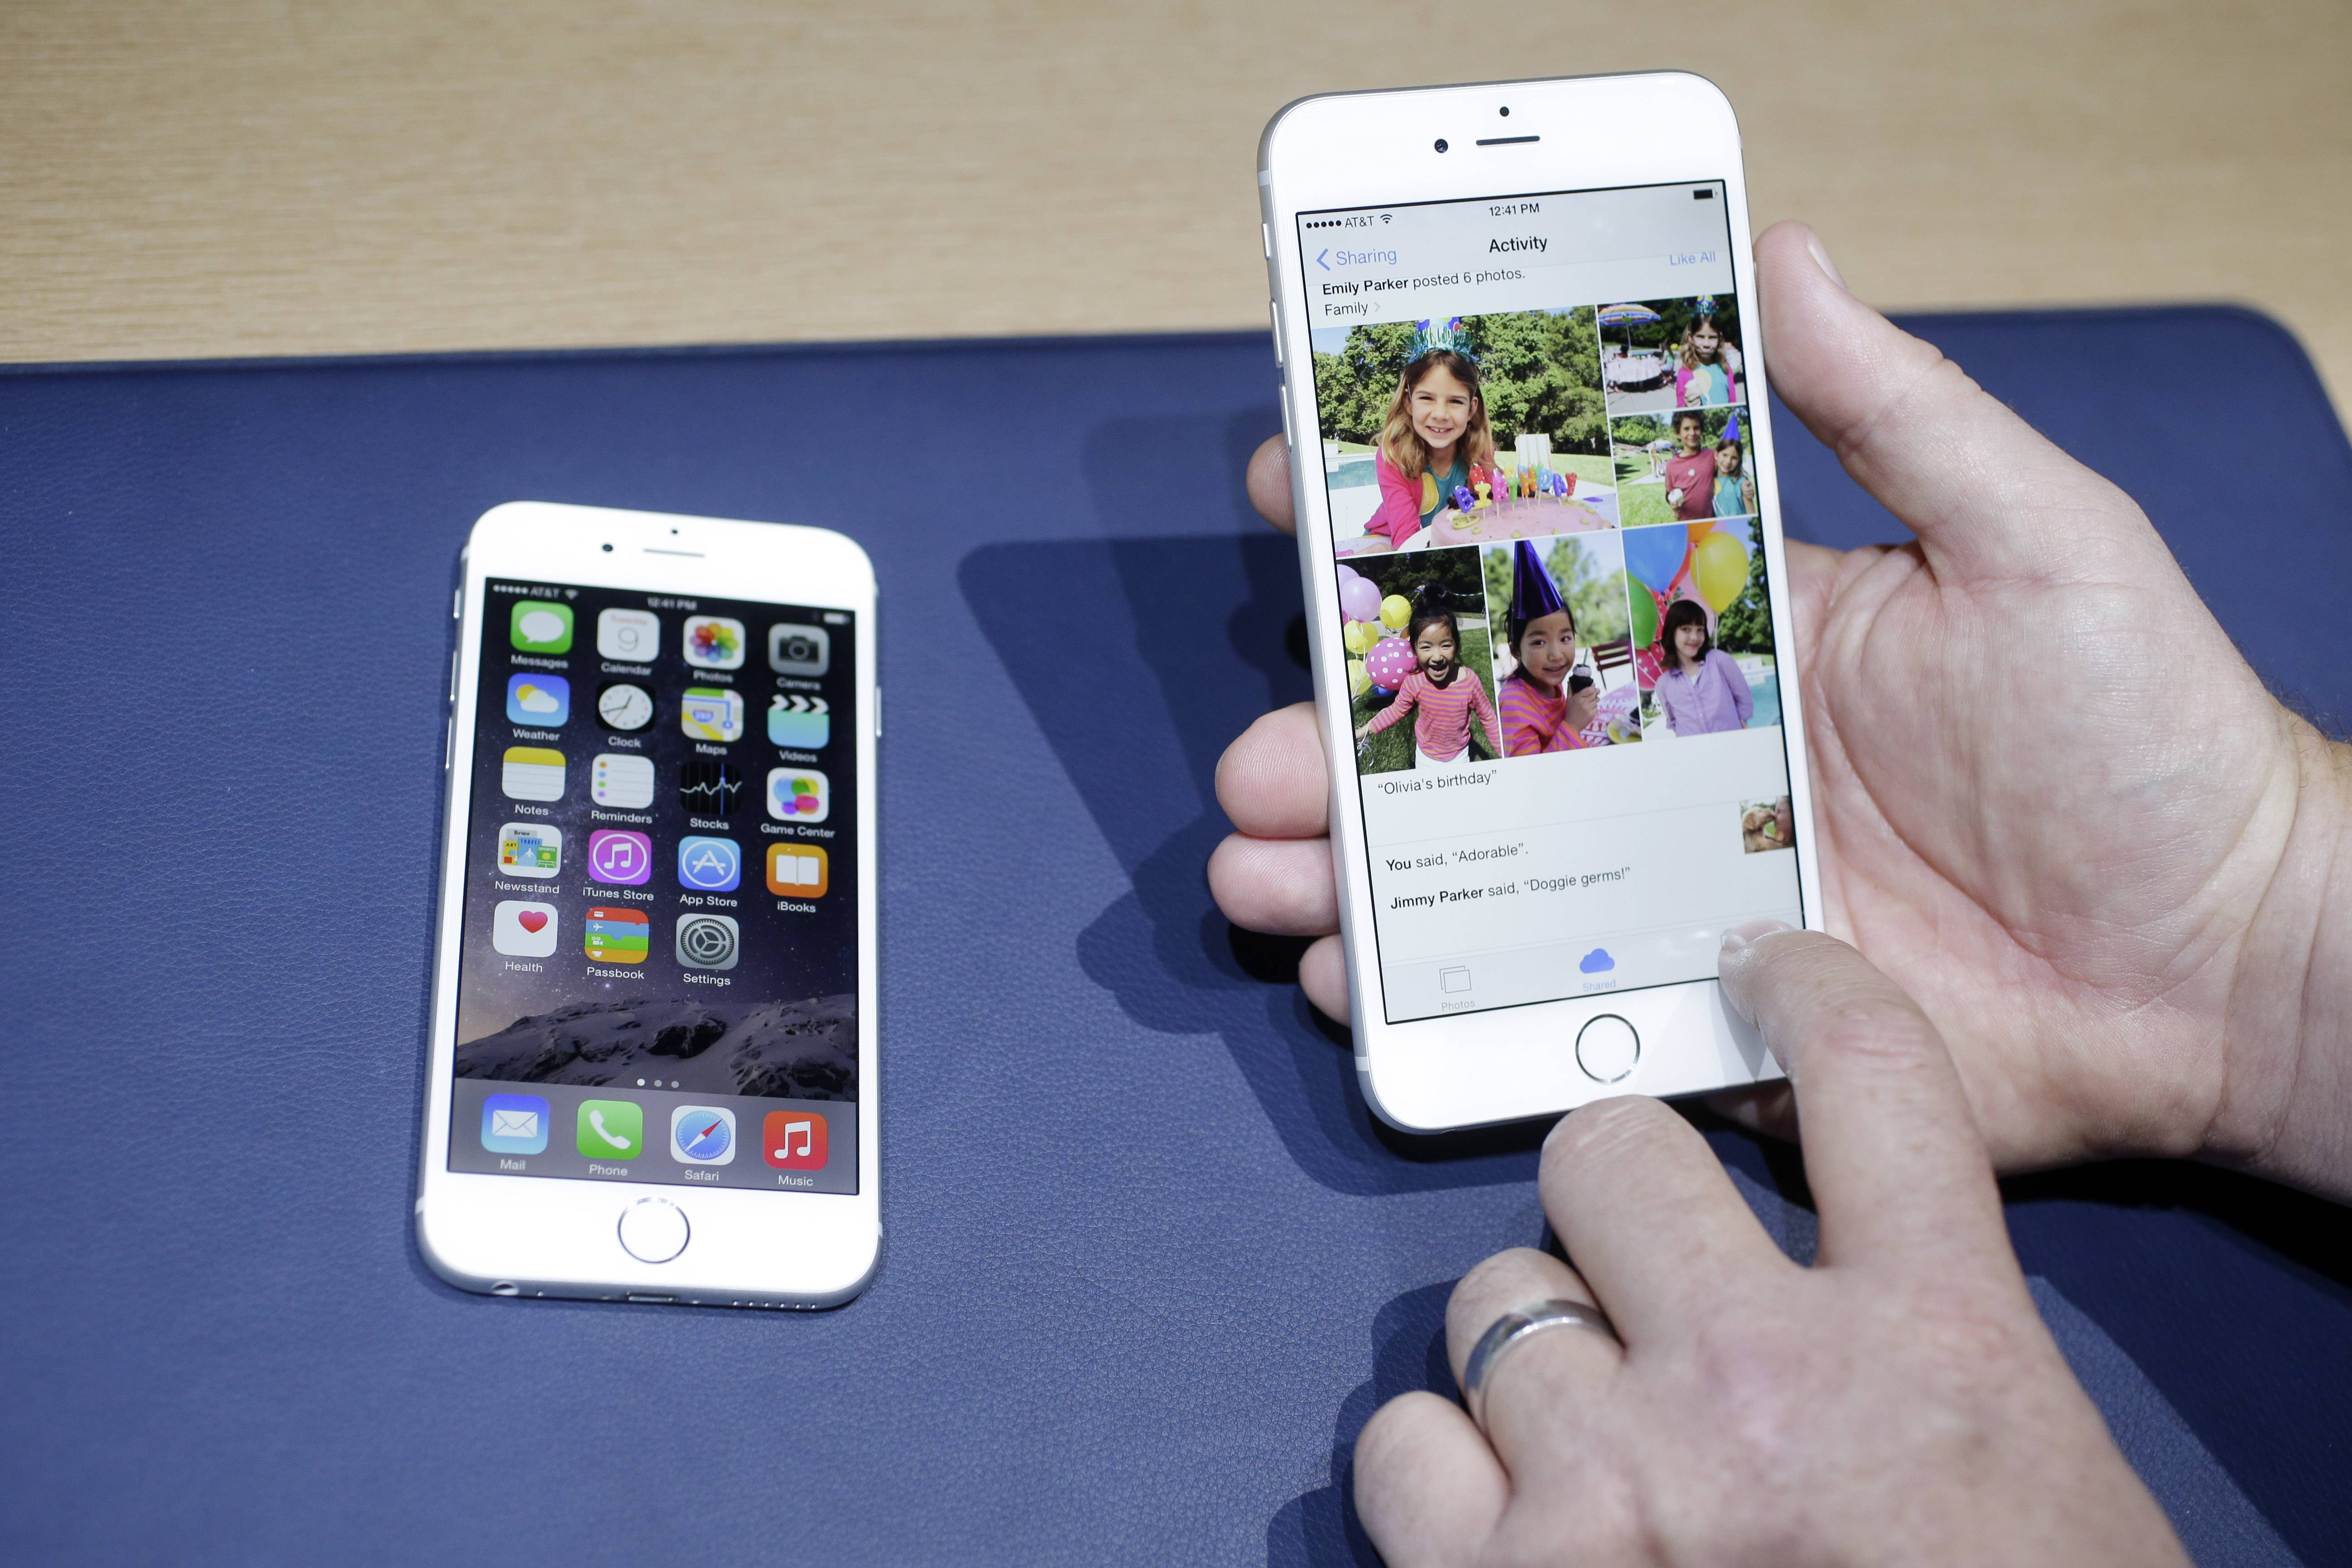 The iPhone 6, at left, and iPhone 6 plus are shown next to each other during a new product release in Cupertino, Calif. Apple's new and bigger iPhone 6 and iPhone 6 Plus are more durable than last year's model and a leading Android phone, a study says.